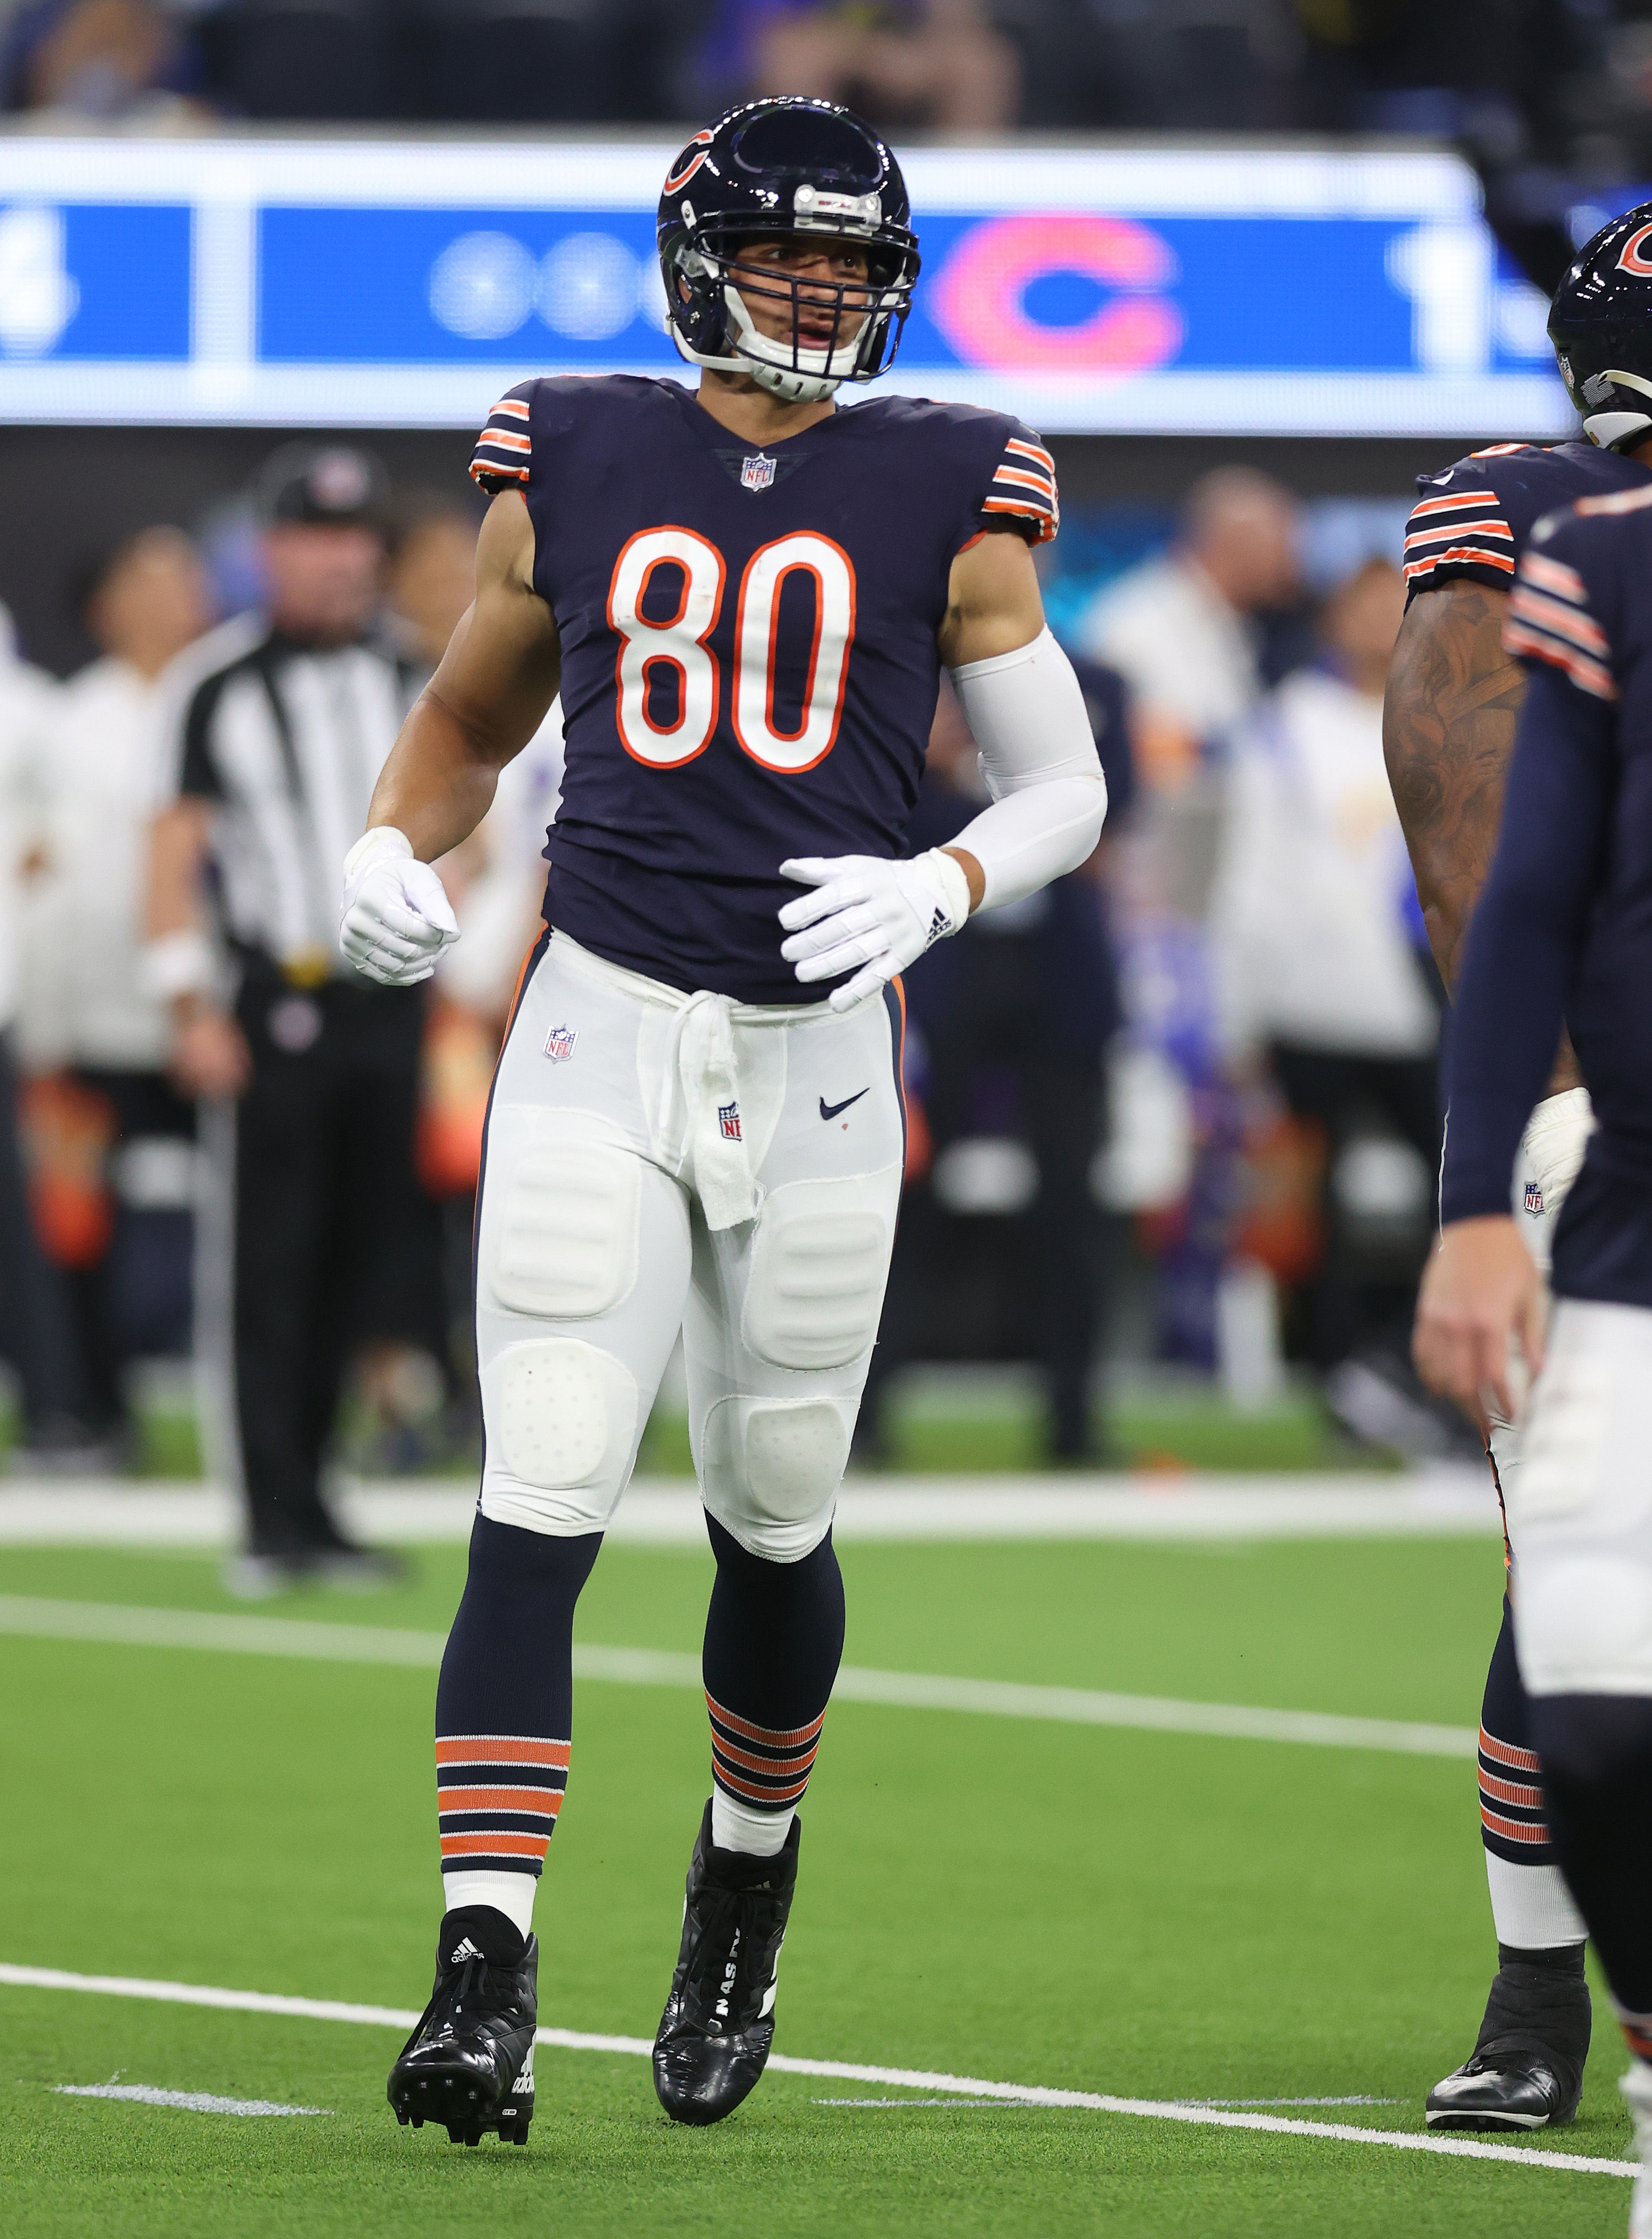 Bears tight end Jimmy Graham did not have a catch Sunday.